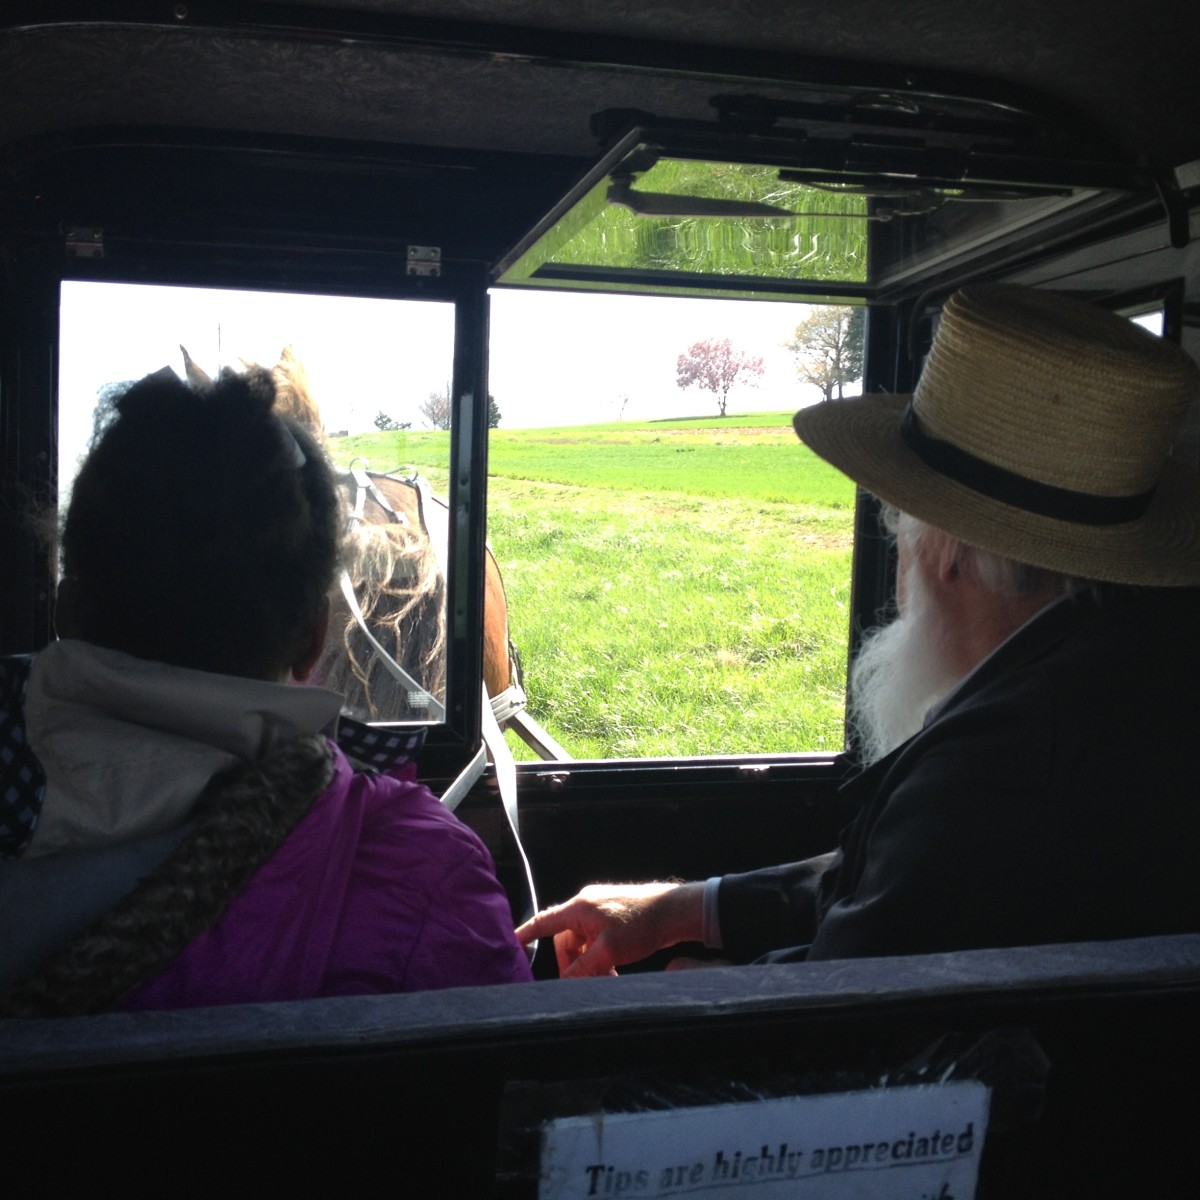 An Amish man giving a buggy tour of Amish country- Another great day trip from New York City